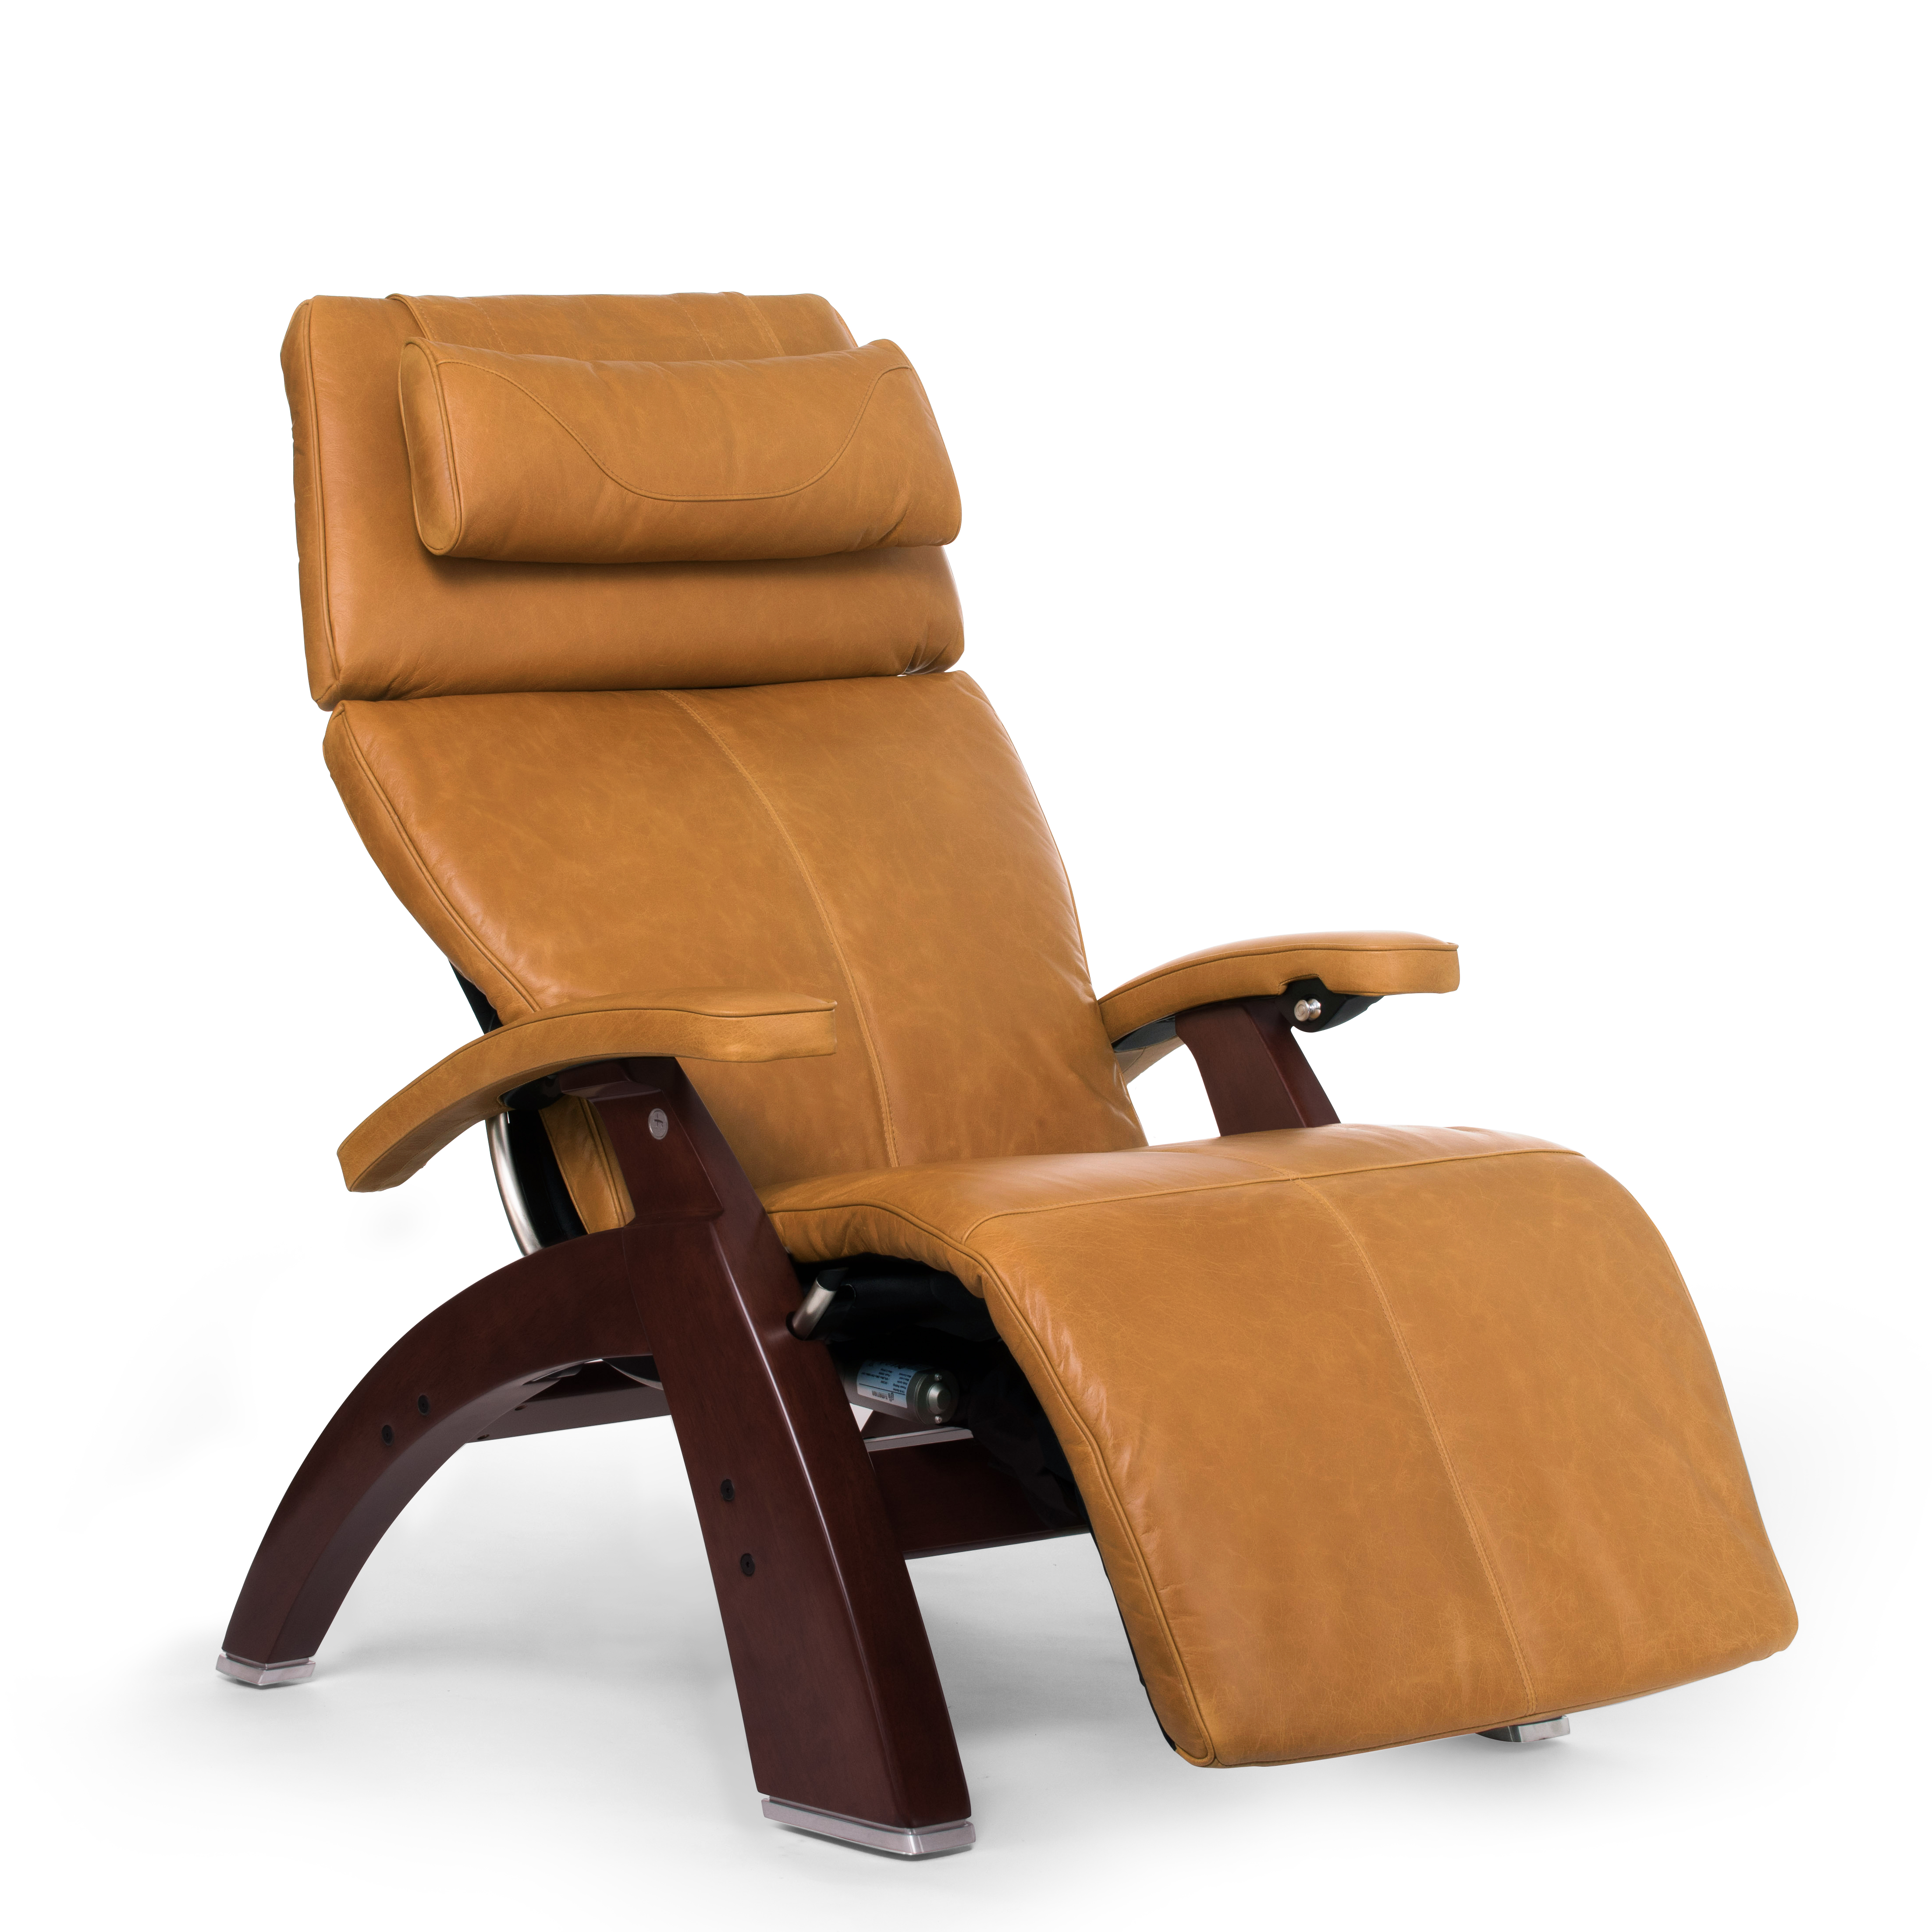 Sycamore Premium Leather Chestnut Wood Base Series 2 Classic